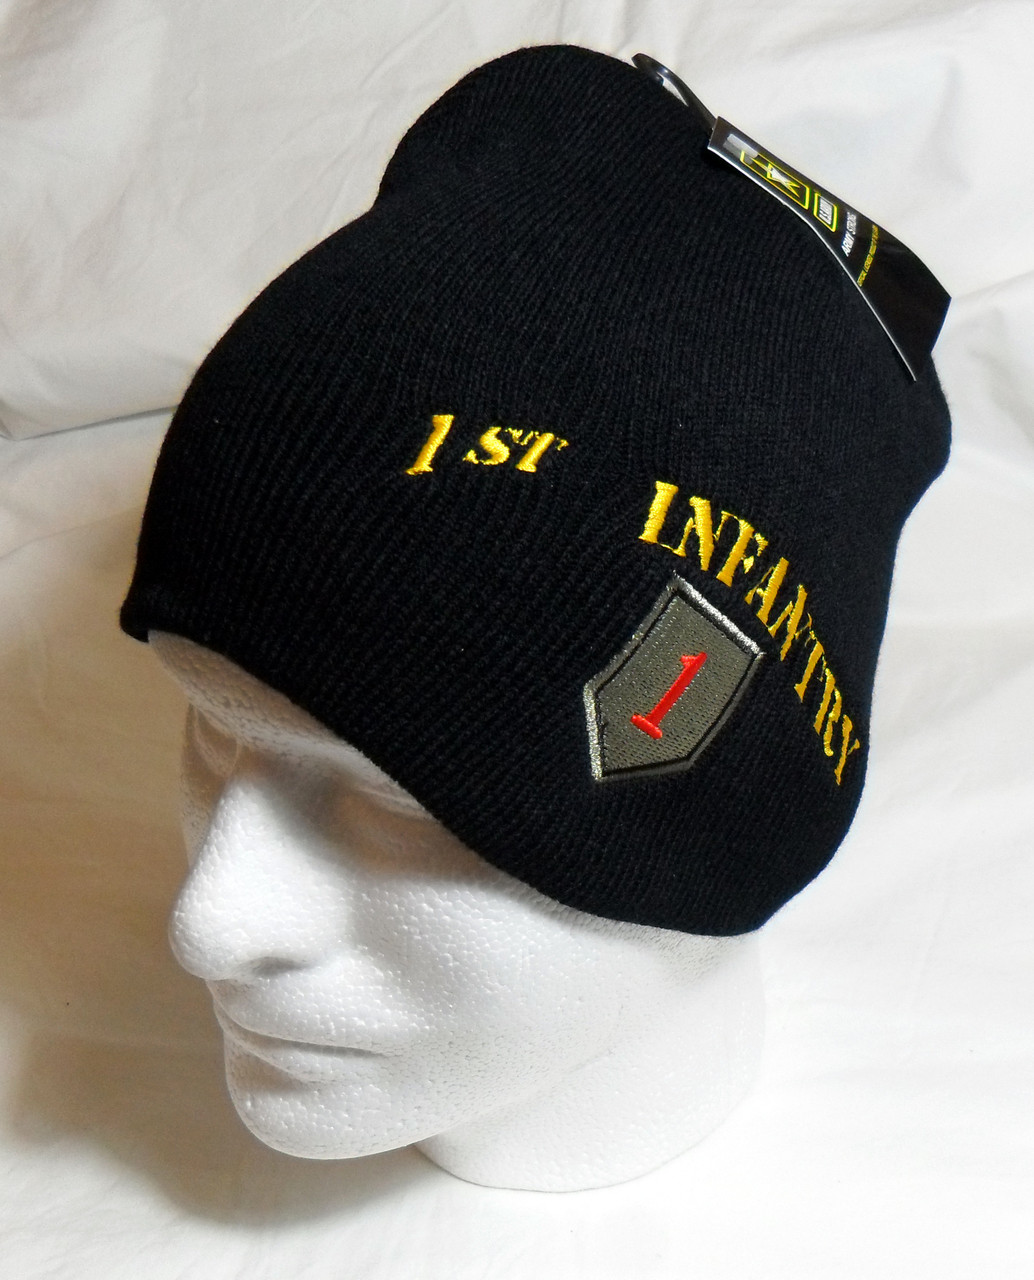 dfa2c7e37db5f0 US Army 1st Infantry with Logo Watch Cap Beanie Winter Ski Hat Toboggan  Officially Licensed